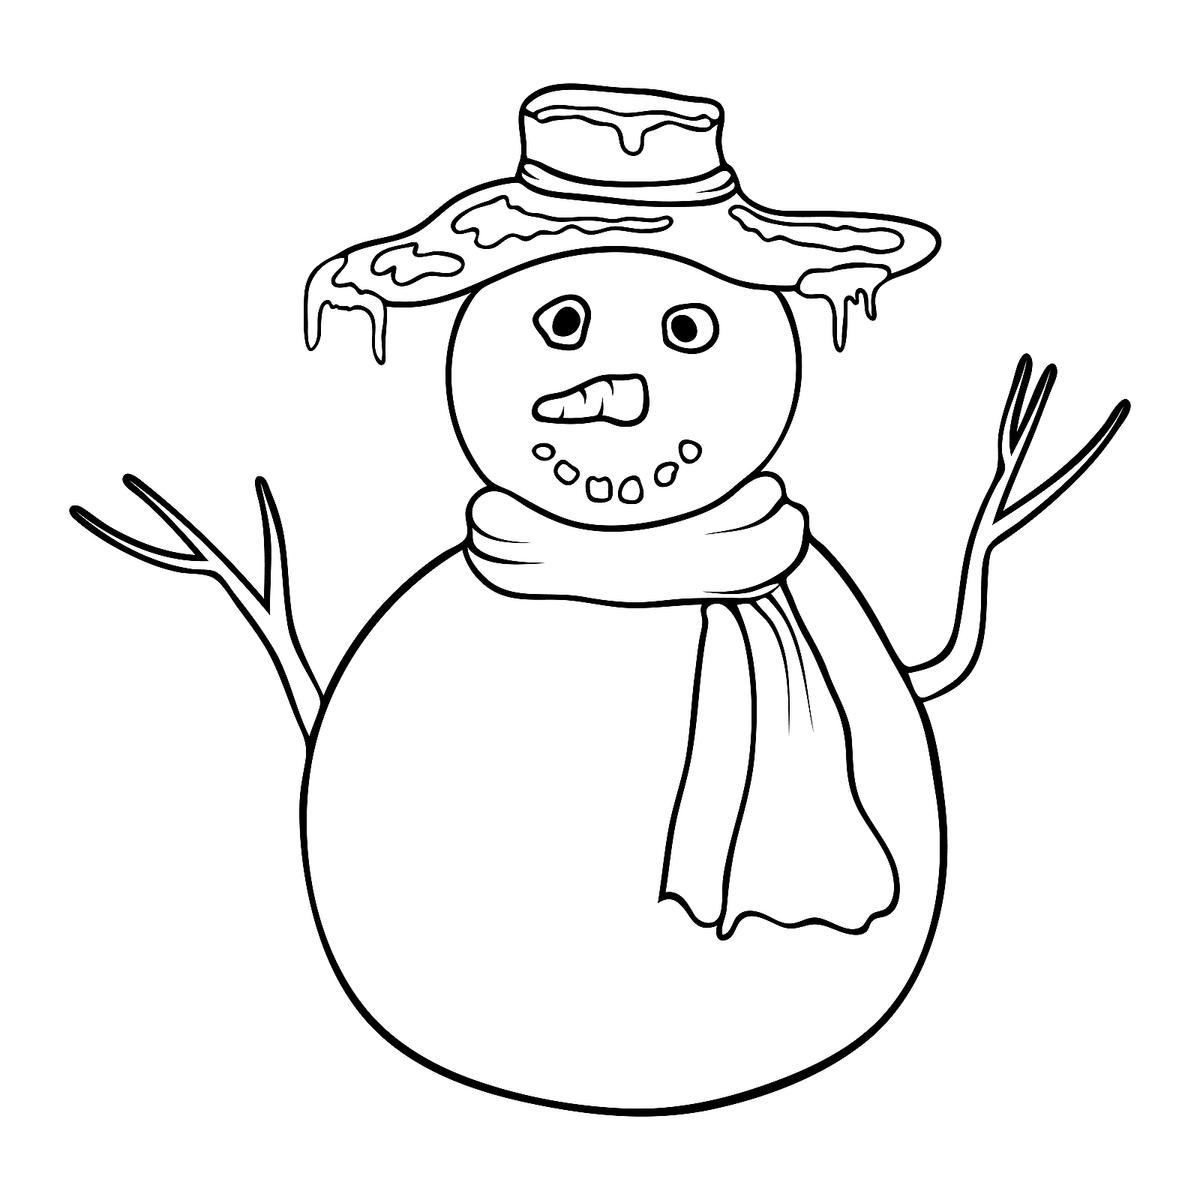 Printable coloring page for kids and adults bible character ... | 1200x1200